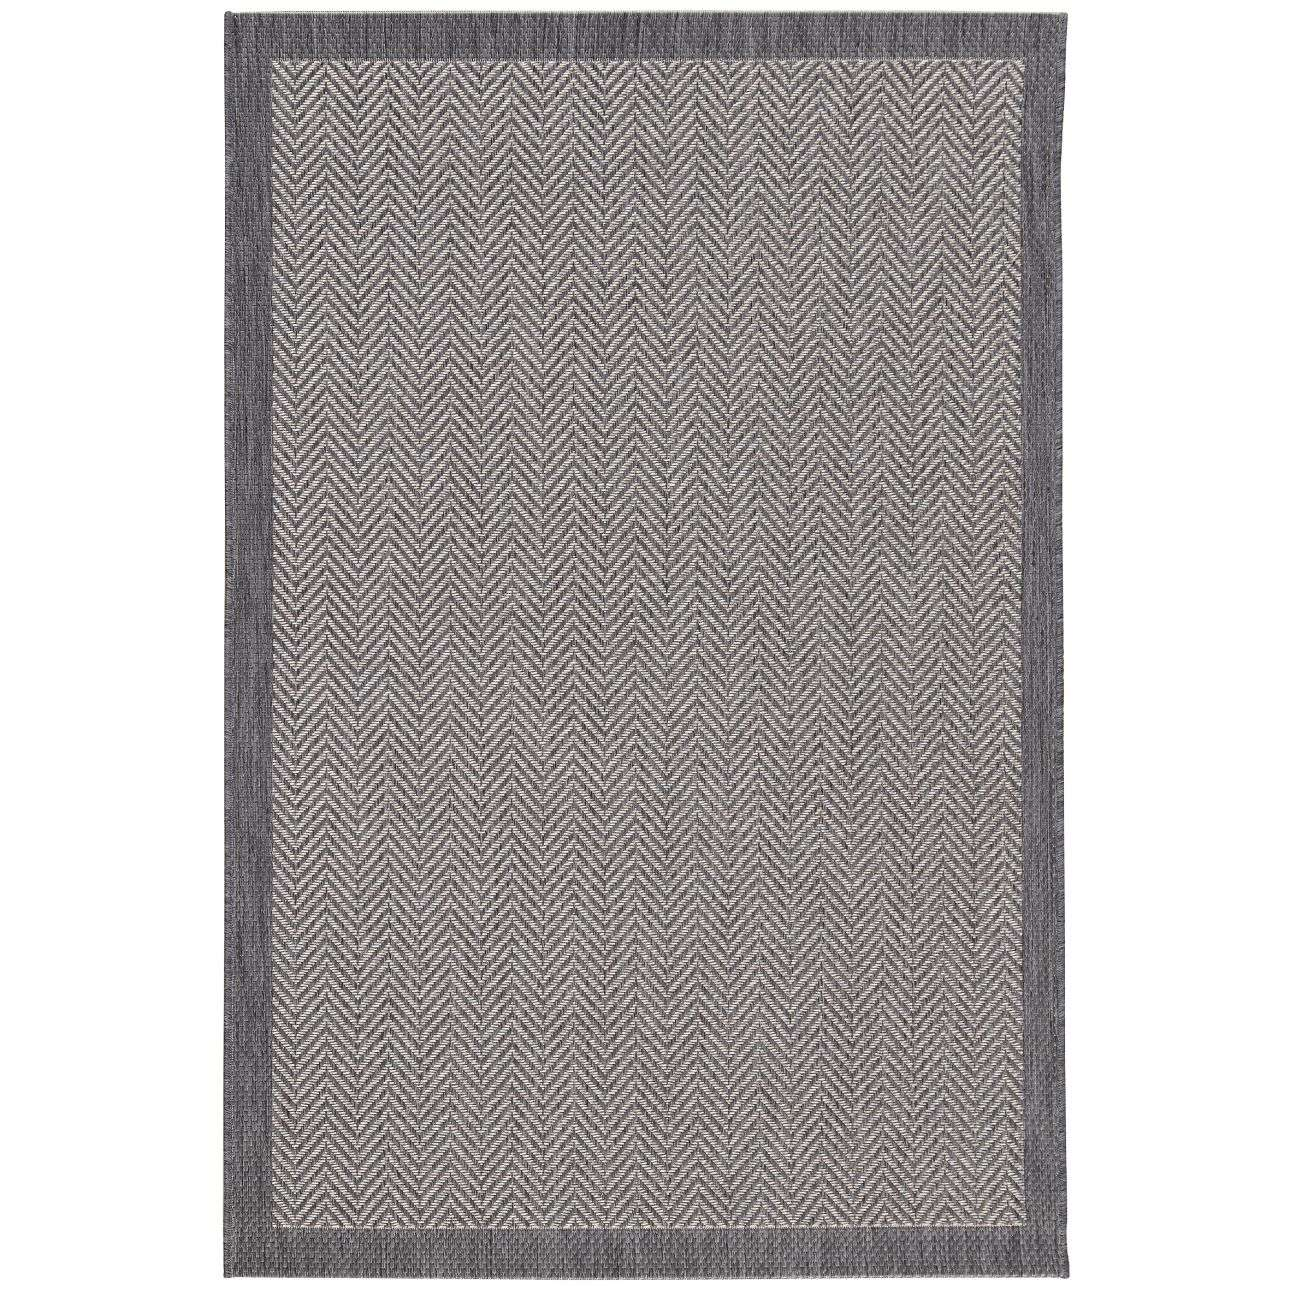 Breeze Cliff Grey Area Rug 120x170cm